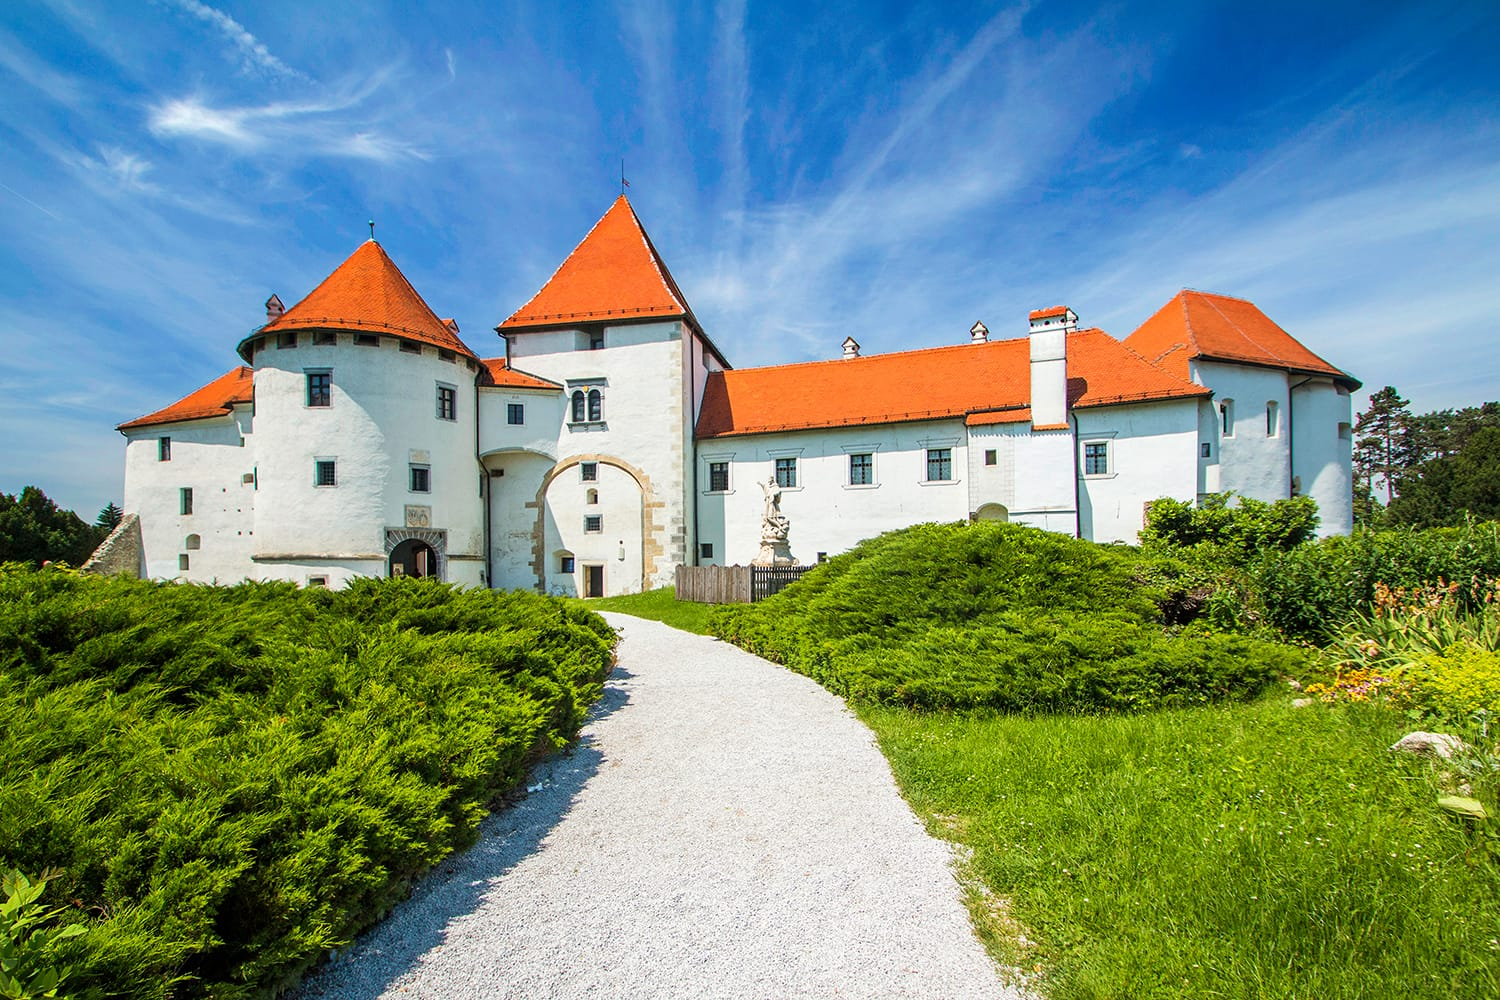 City park and old castle in Varazdin, Croatia